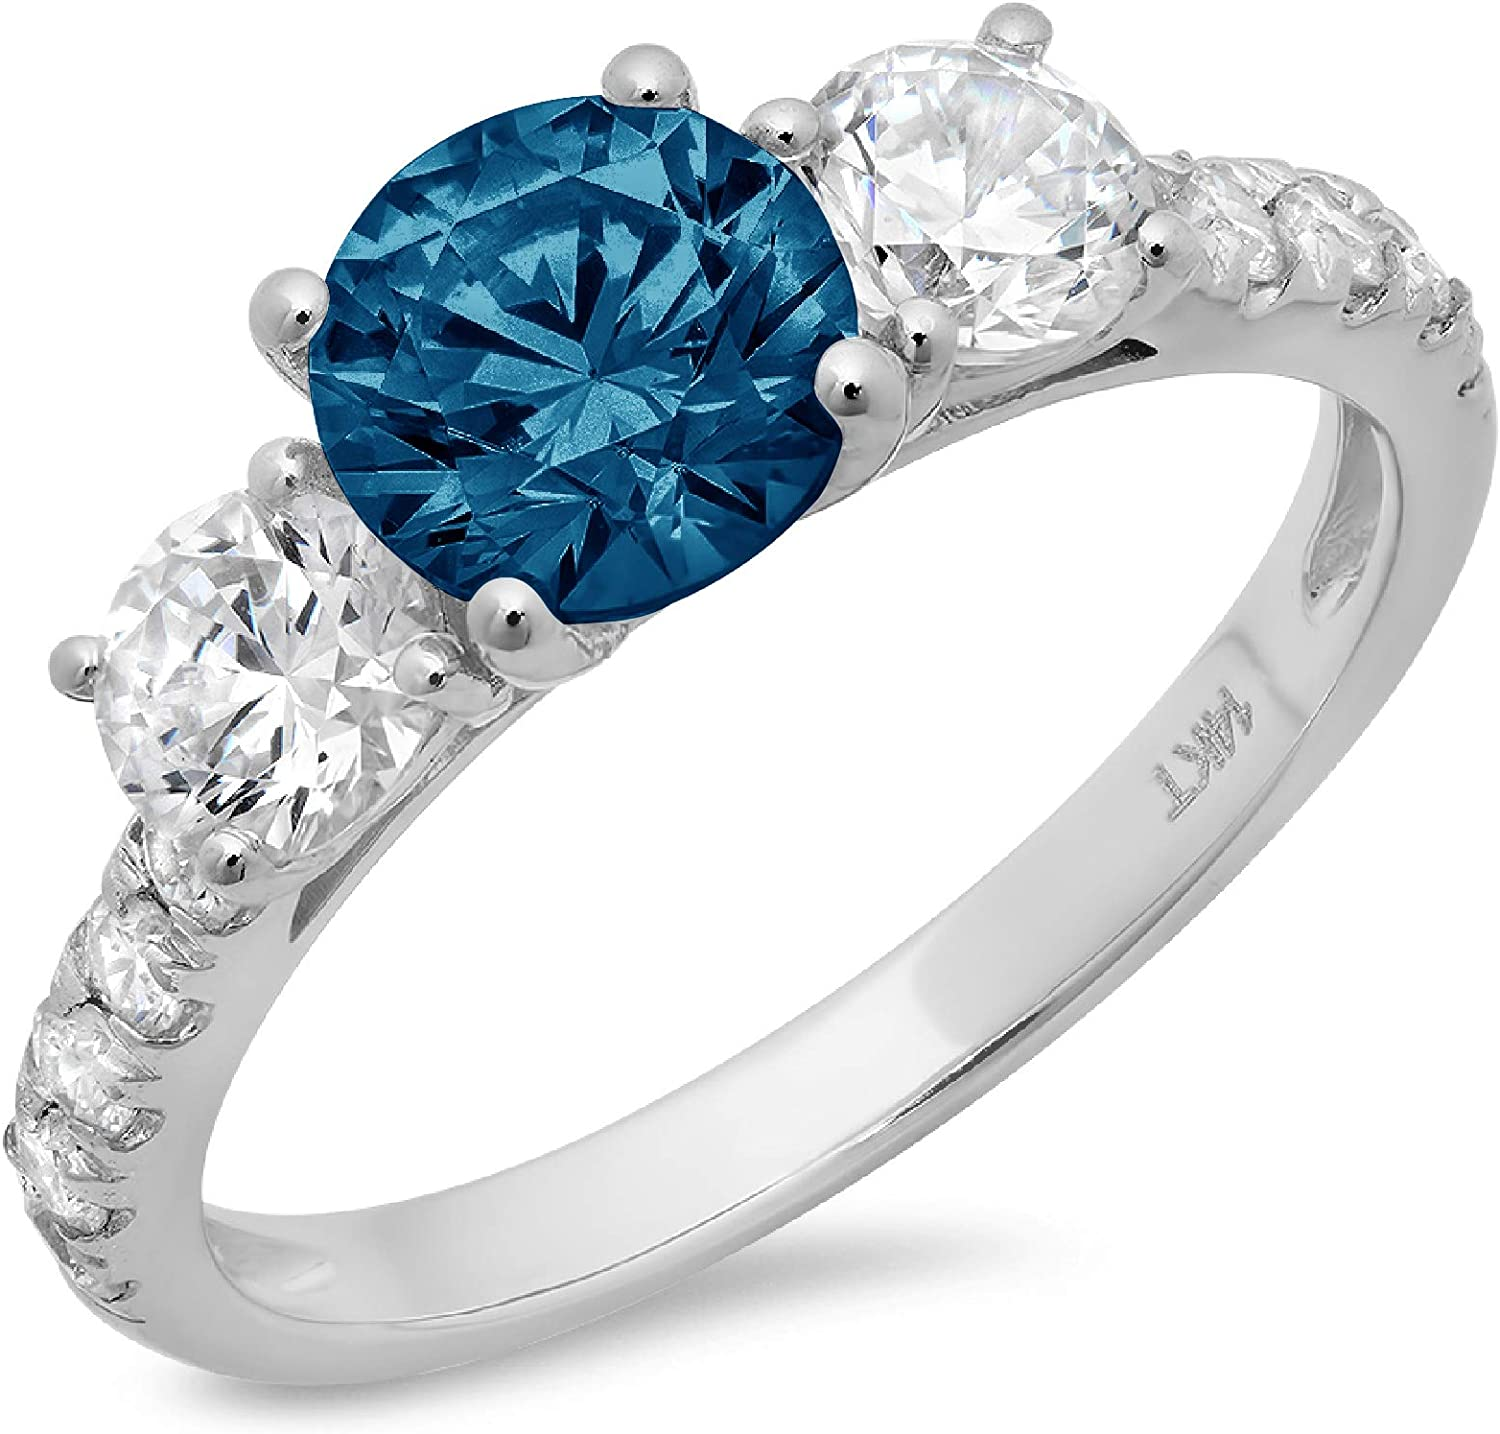 1.94ct Brilliant Round Cut Solitaire 3 stone With Accent Natural Royal Blue Topaz Gem Stone Ideal VVS1 Engagement Promise Statement Anniversary Bridal Wedding ring 14k White Gold